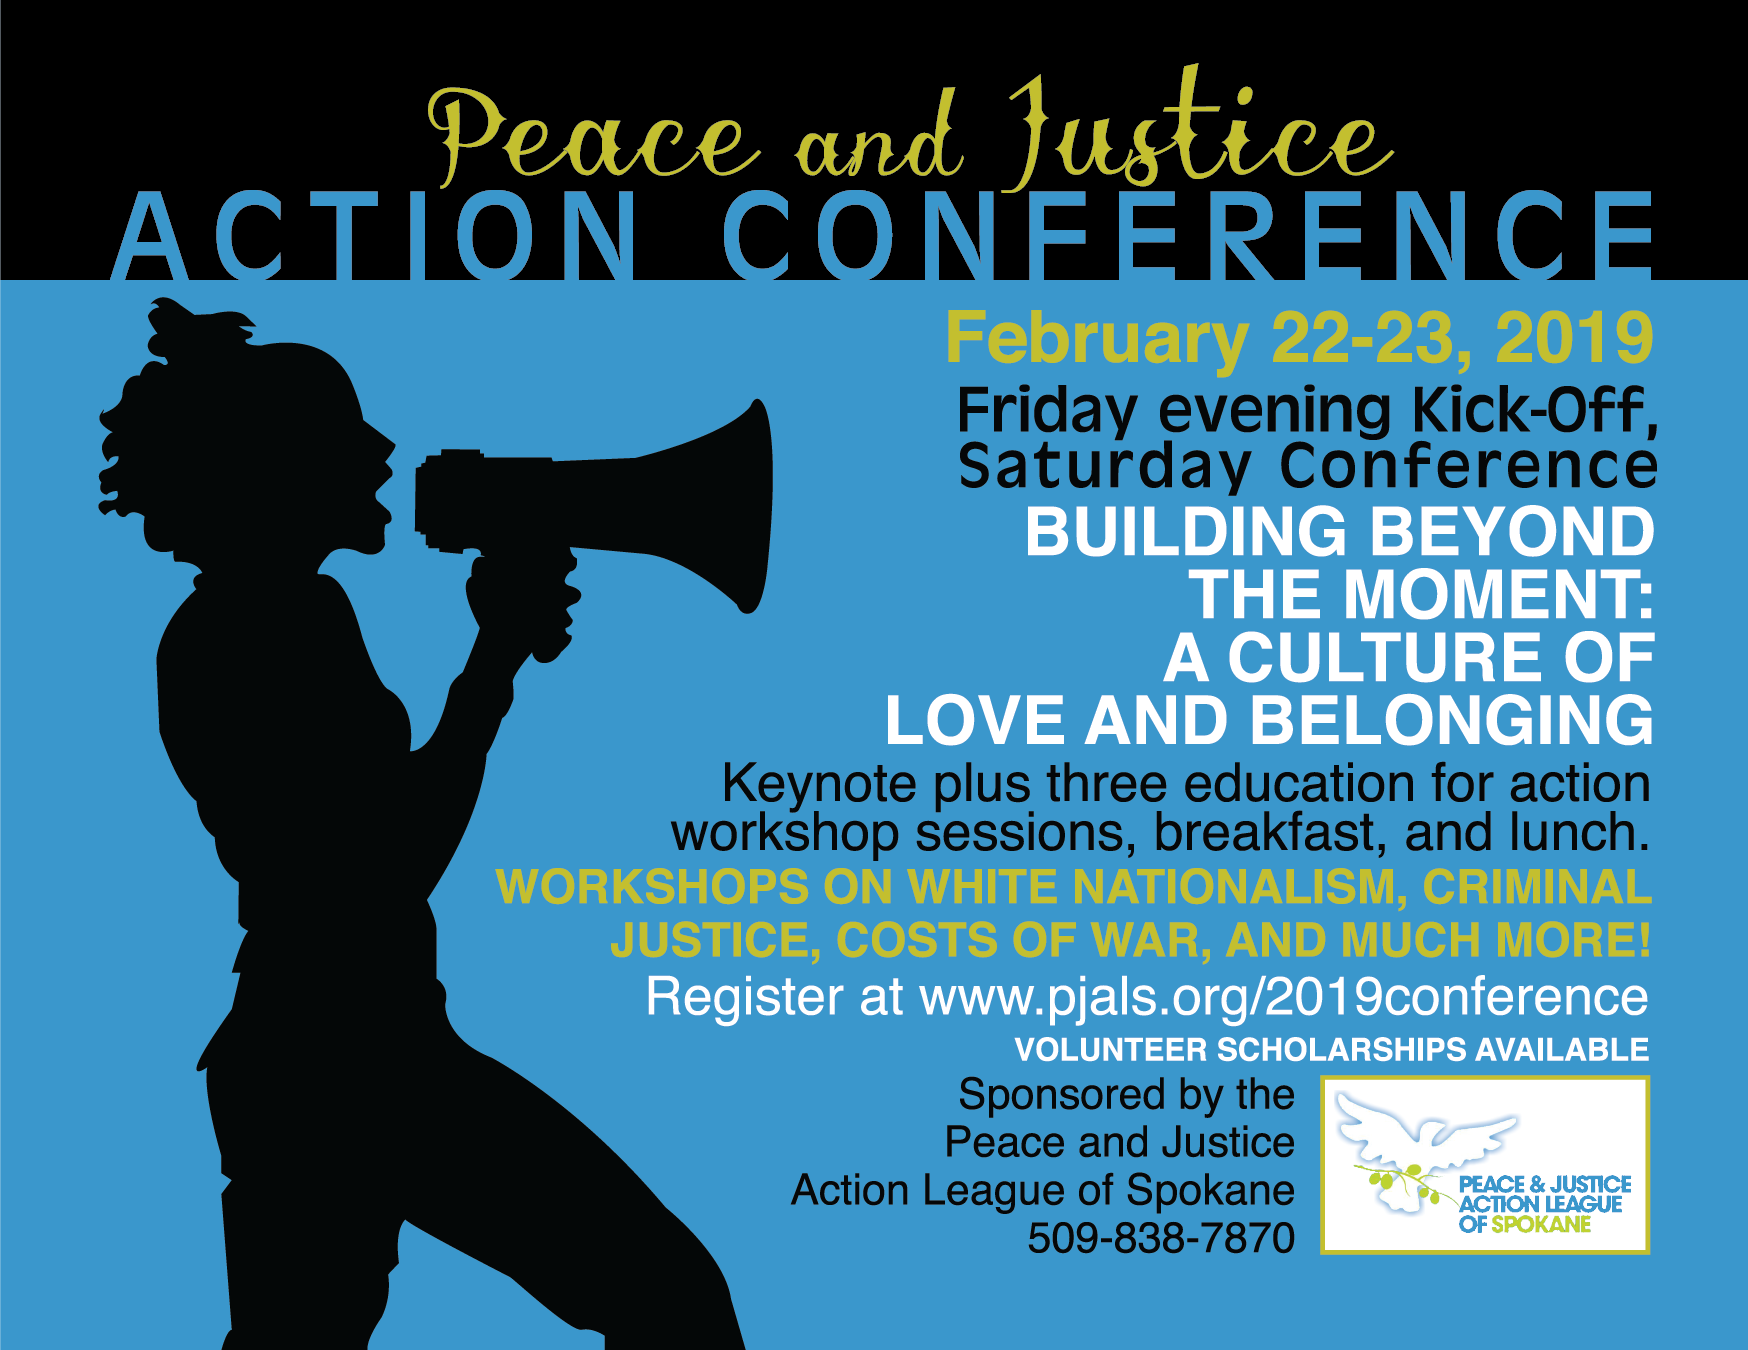 10th Annual Peace & Justice Action Conference: Building Beyond the Moment!